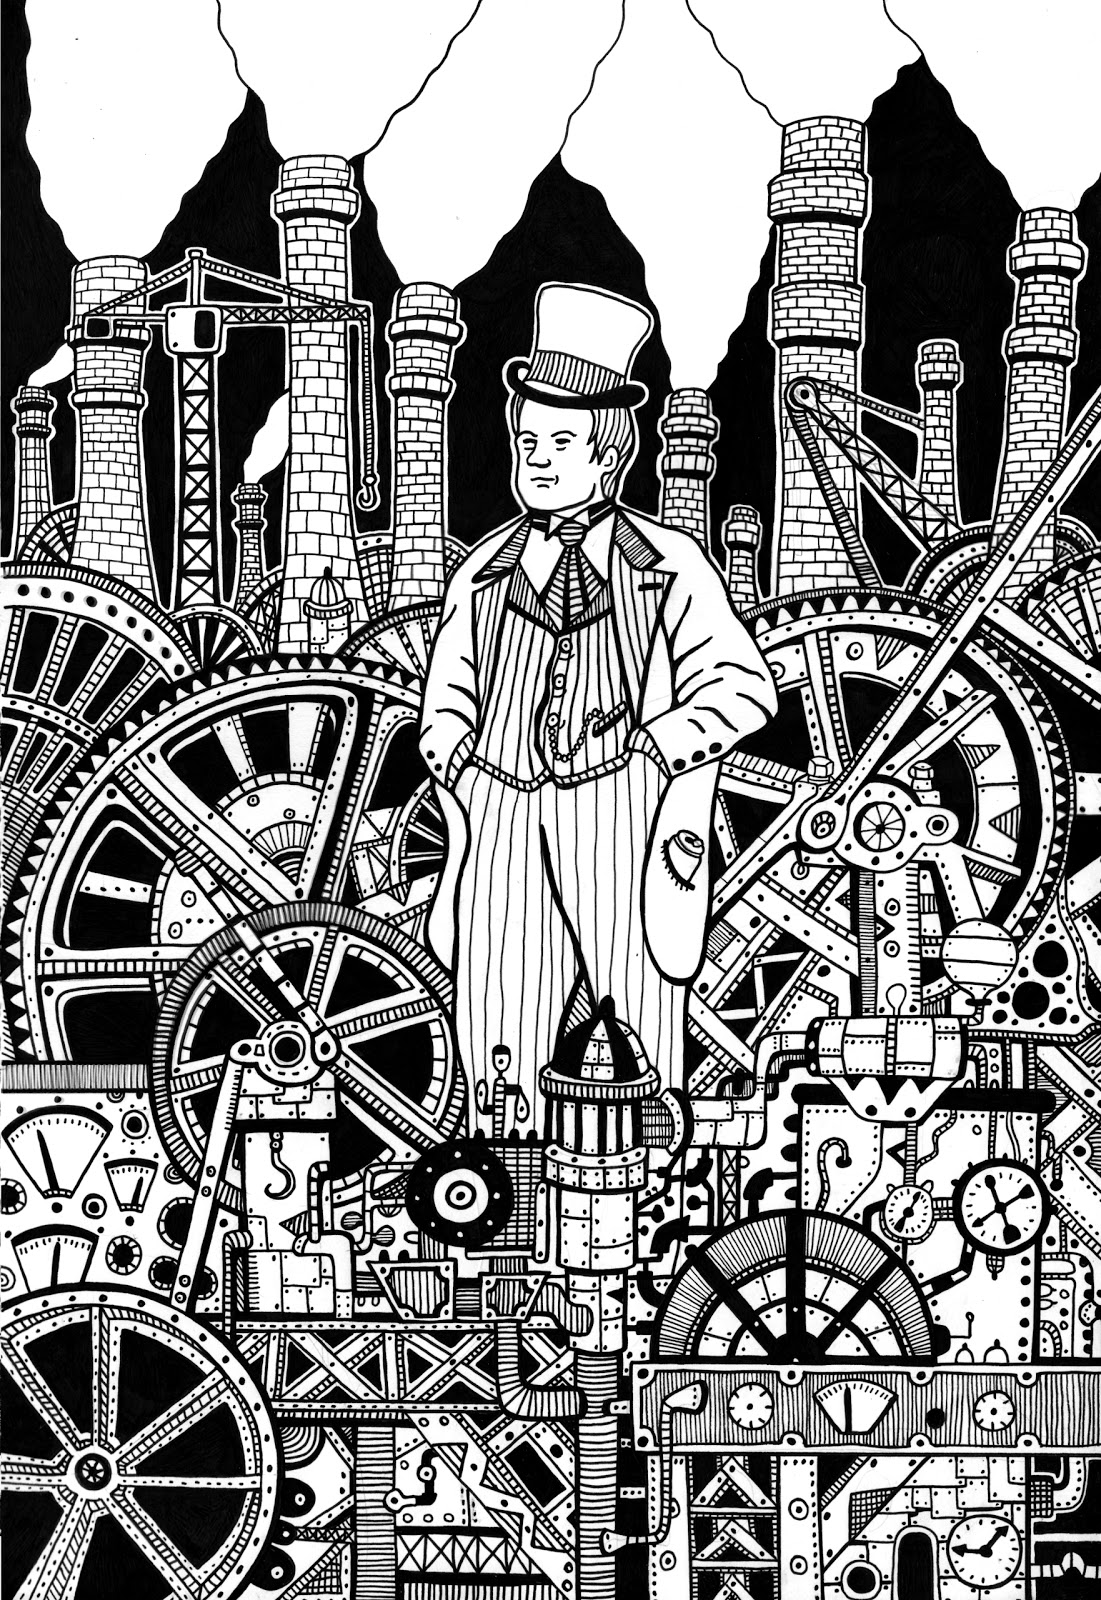 how to become an industrialist